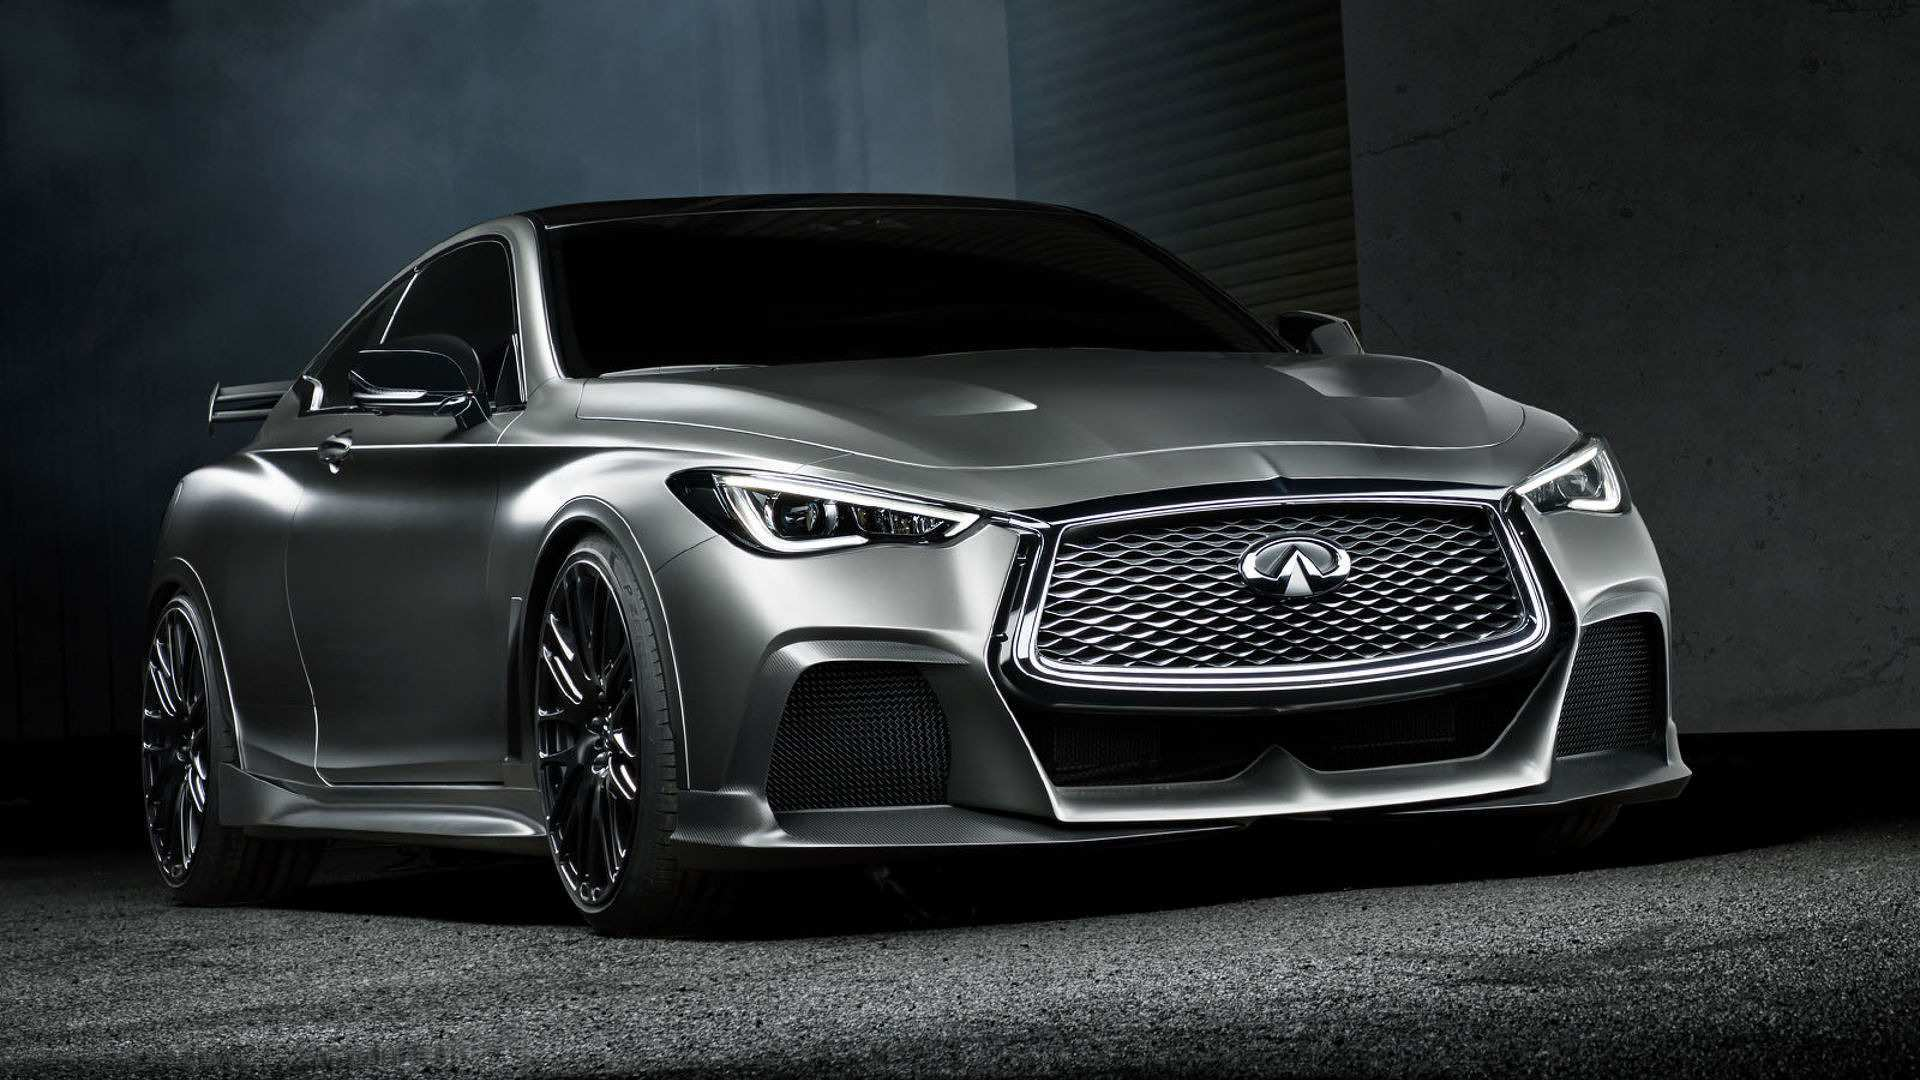 87 Concept of Infiniti Convertible 2020 Performance with Infiniti Convertible 2020